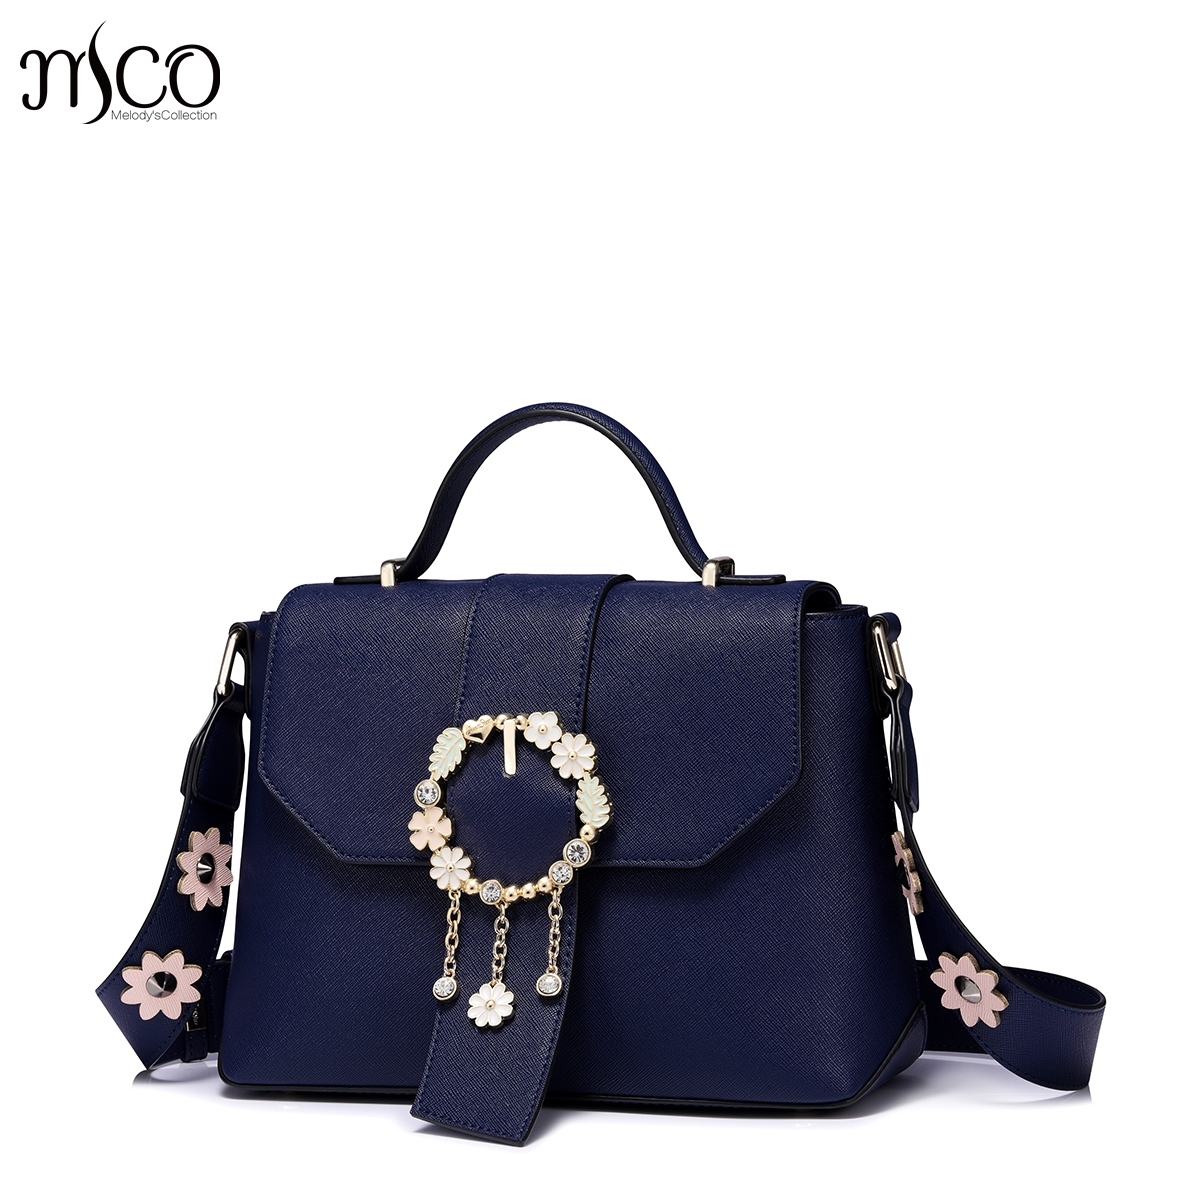 505bb789dc39 2017 Delicate Flower jewelry luxury handbag women bags designer brand  shoulder female small crossbody bag for